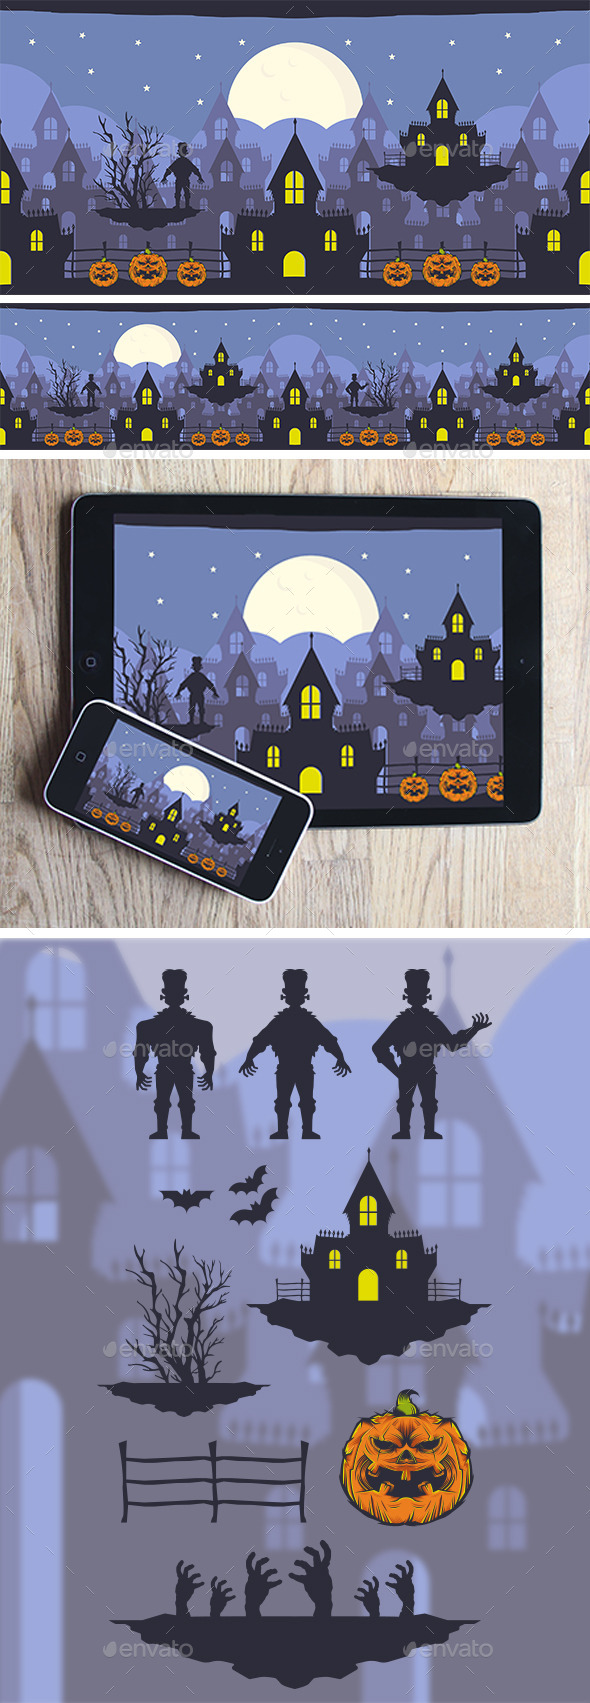 Halloween Game Background - Backgrounds Game Assets